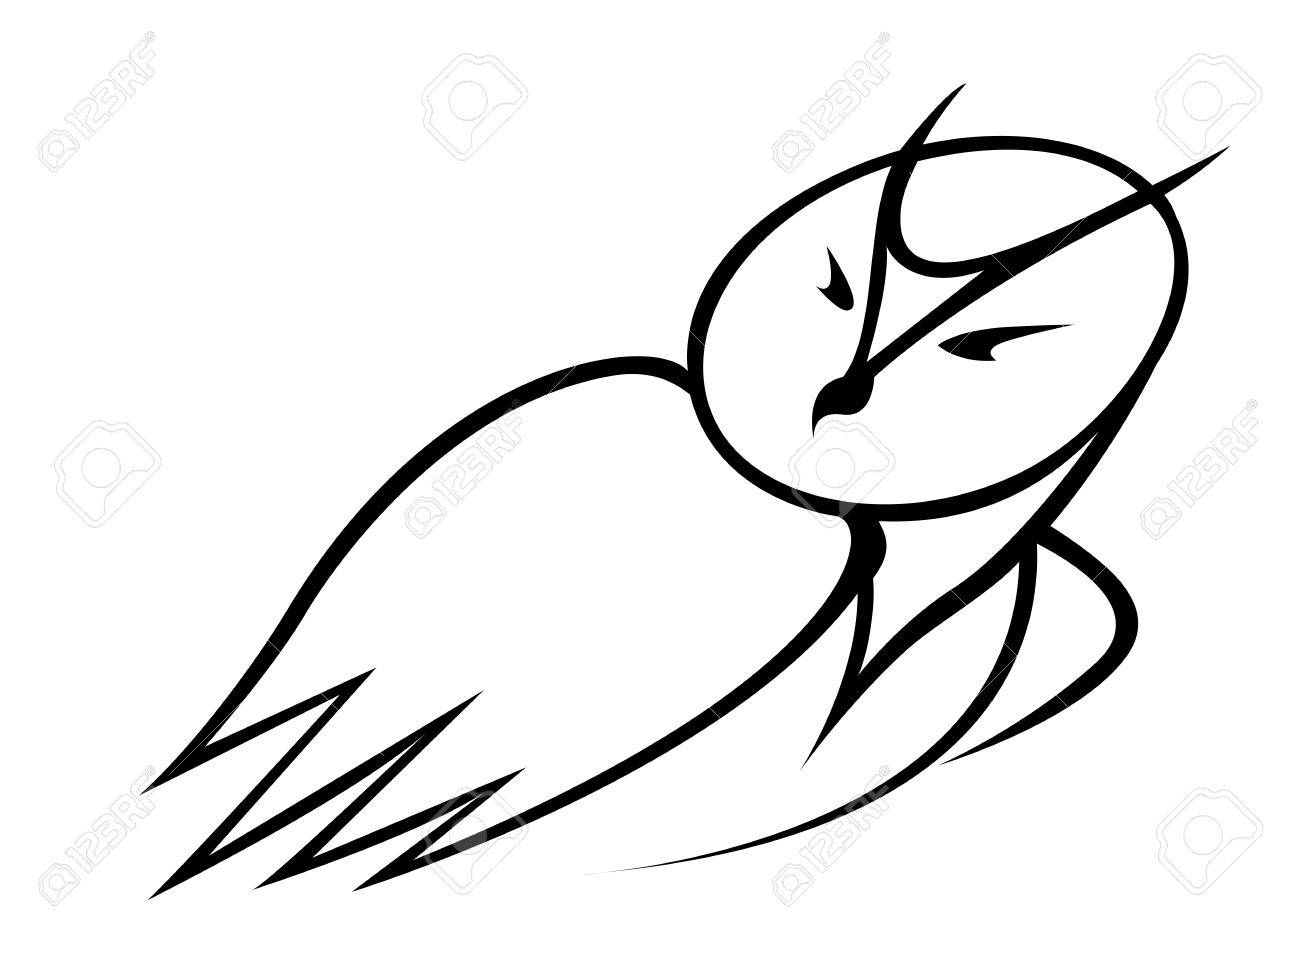 Black And White Outline Doodle Sketch Of A Cartoon Owl Looking